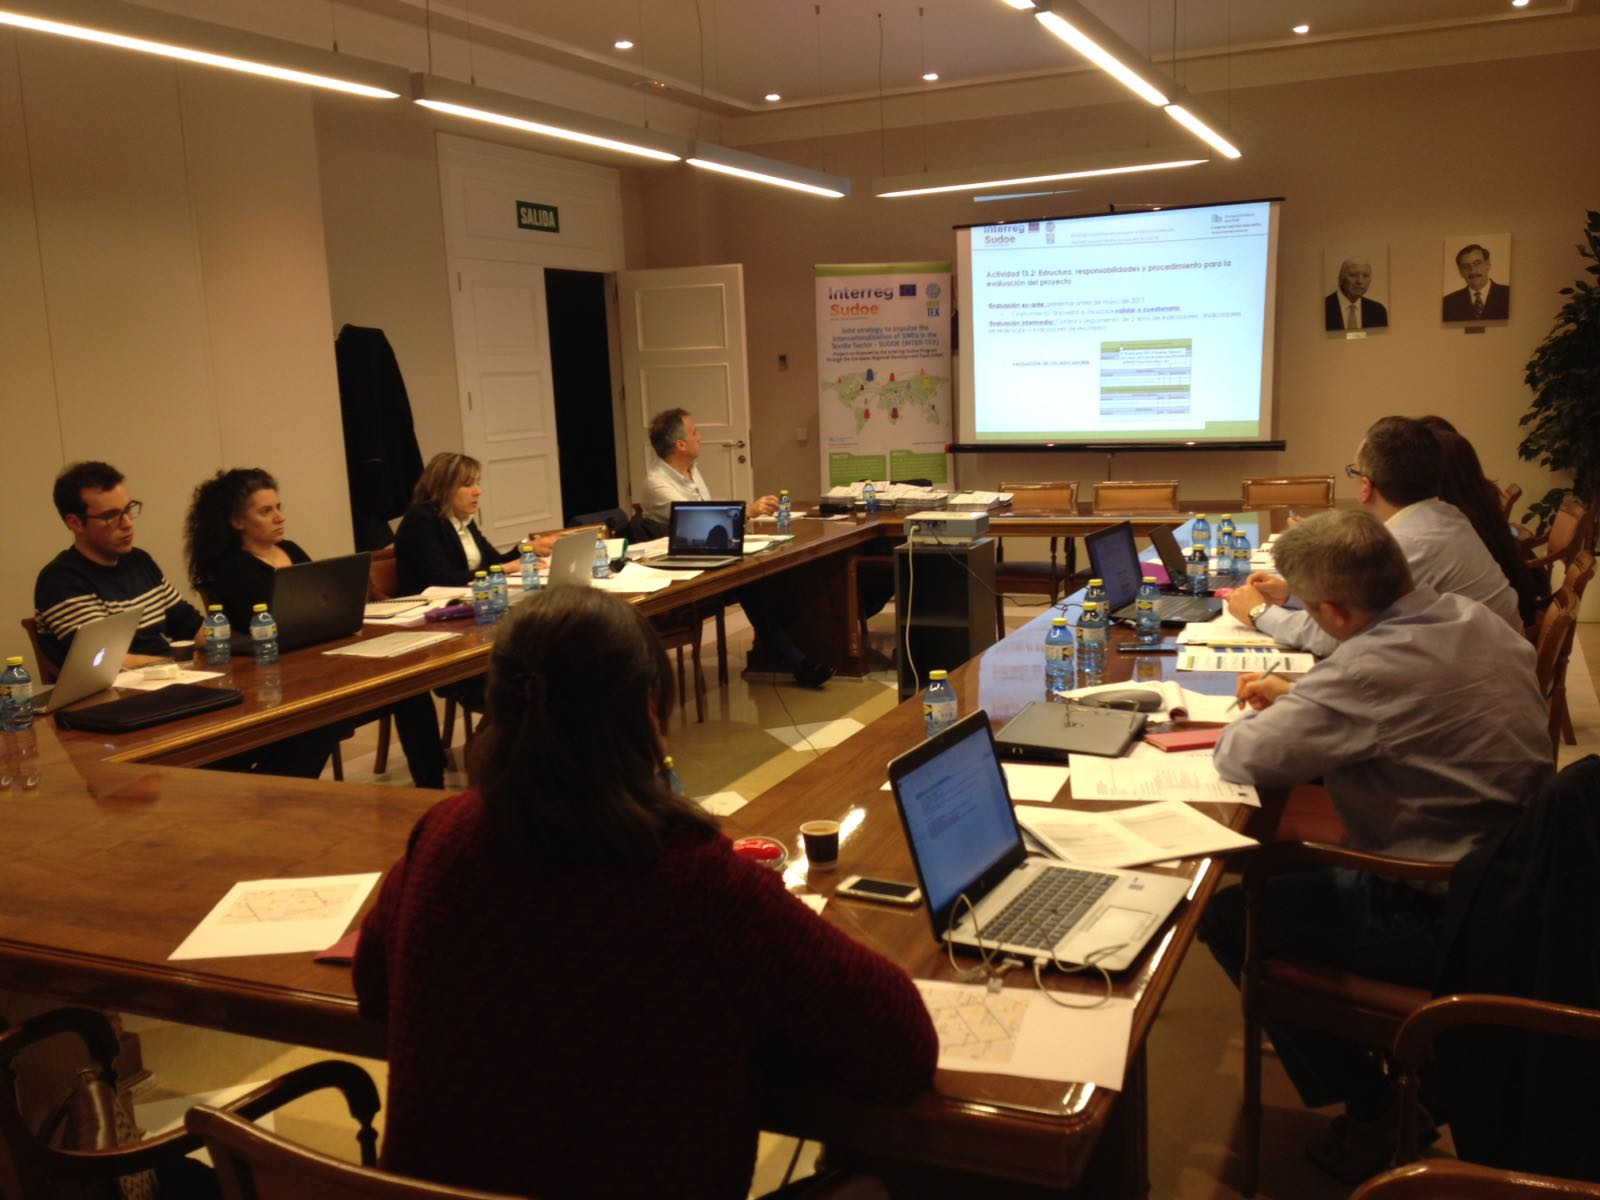 The 2nd transnational meeting of the INTER-TEX project took place in Valencia in March